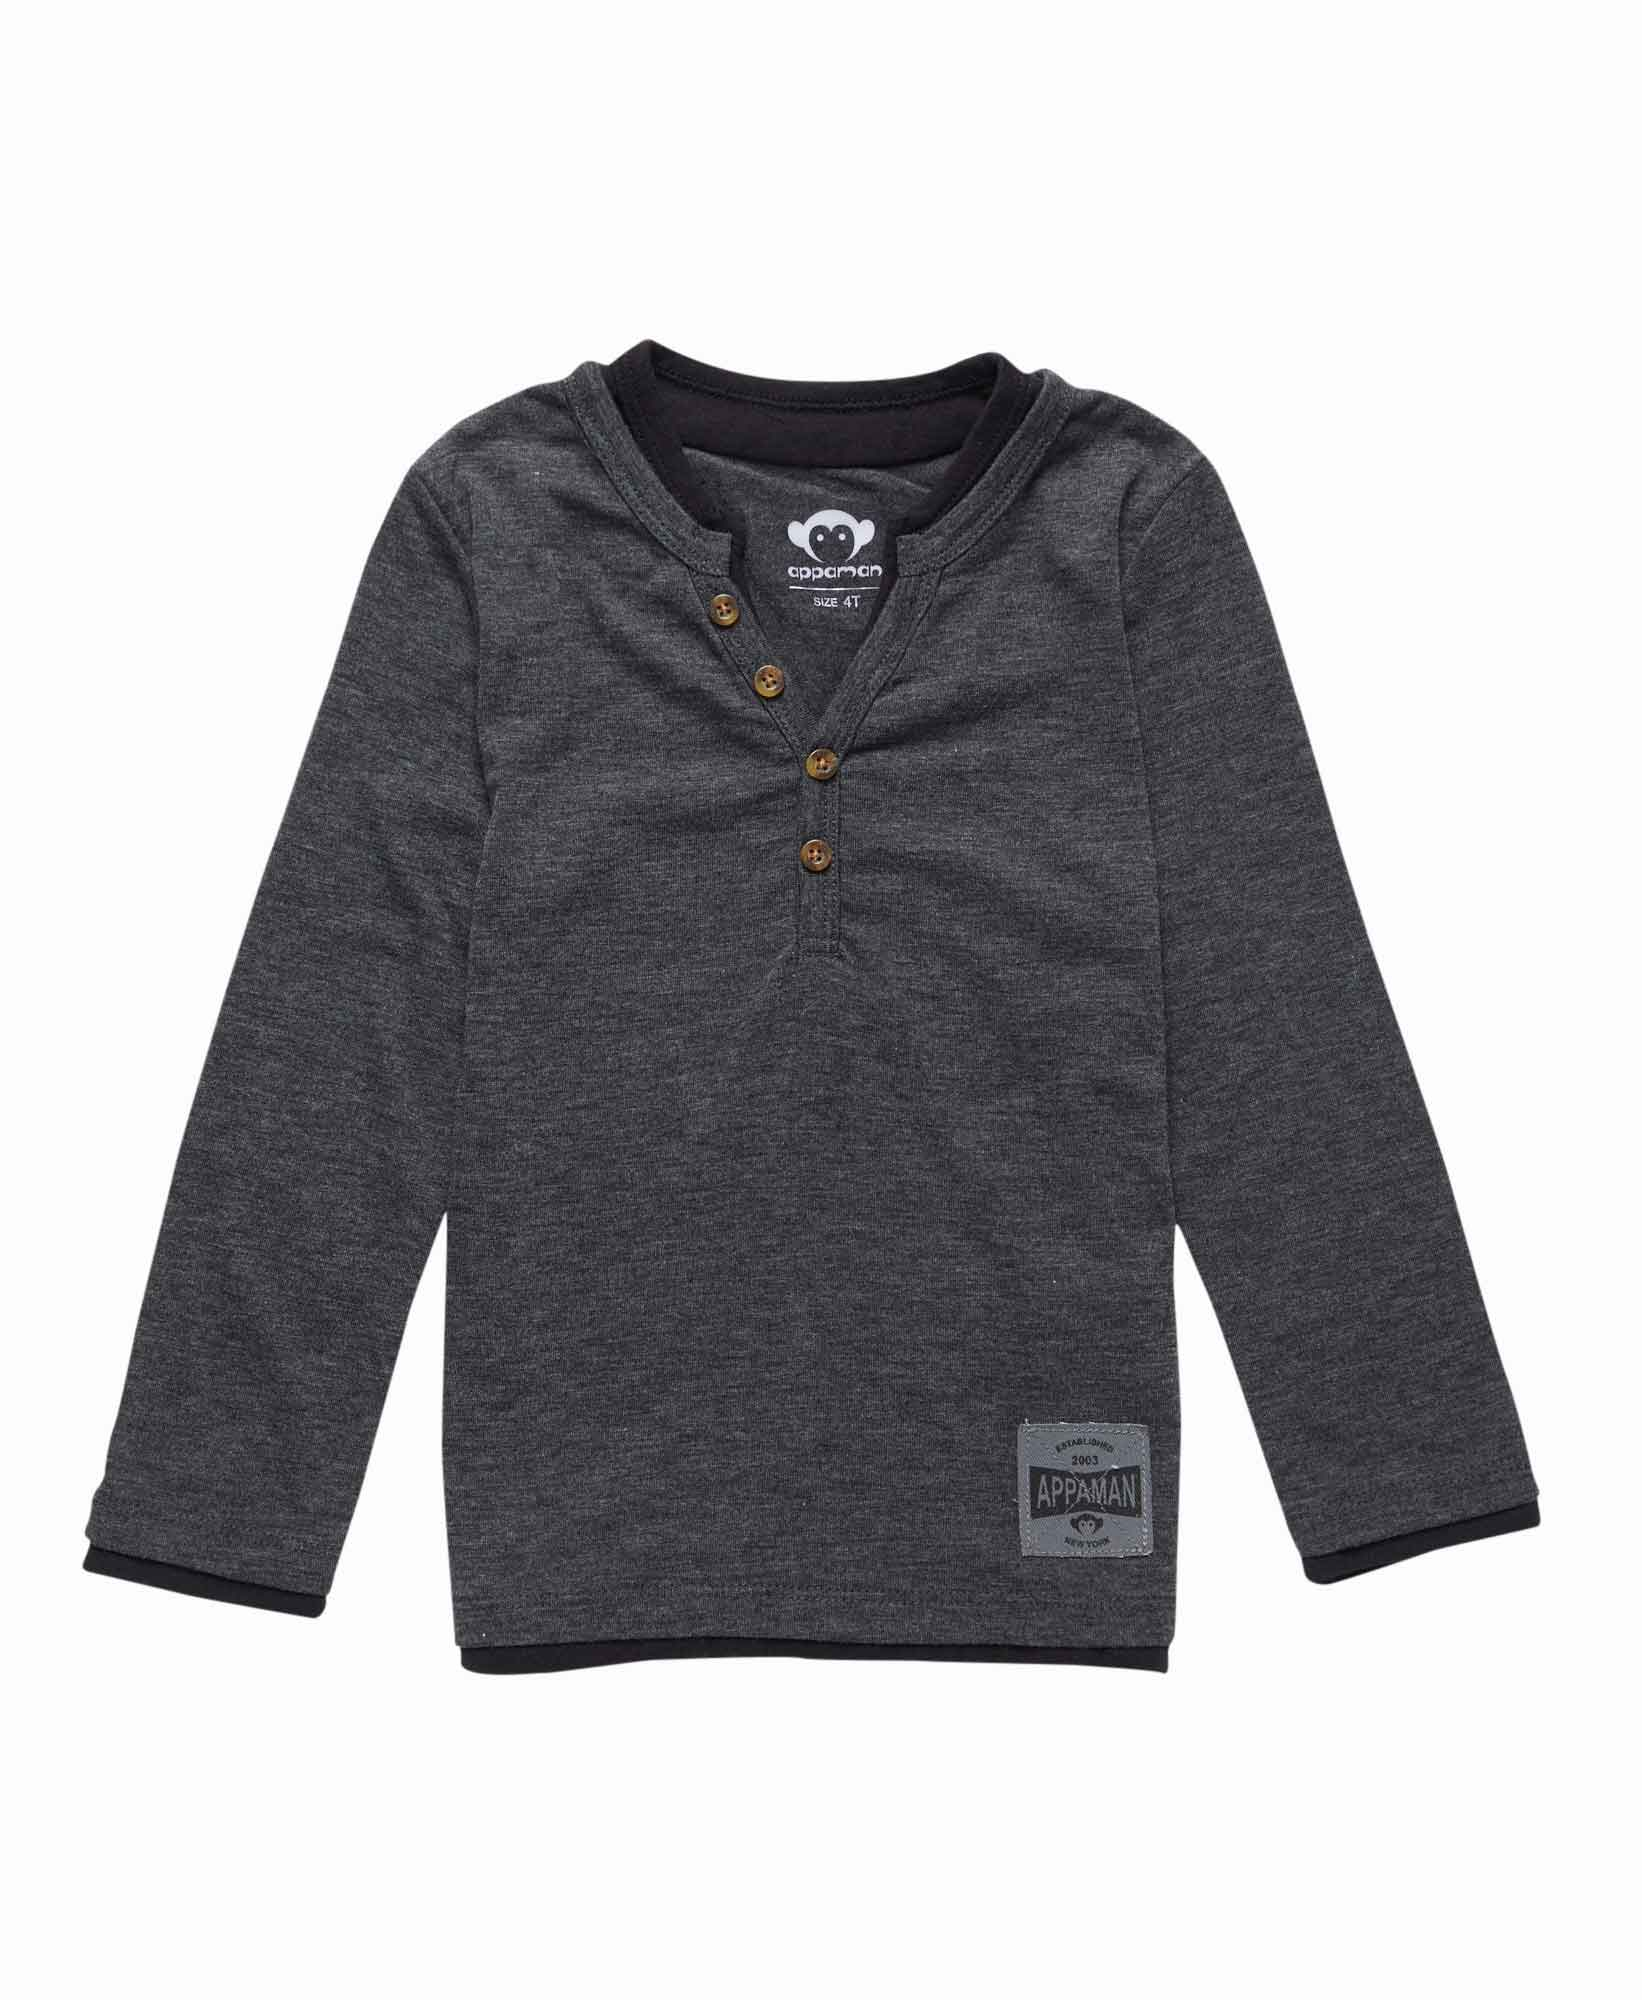 Appaman Long Sleeve Camden Henley